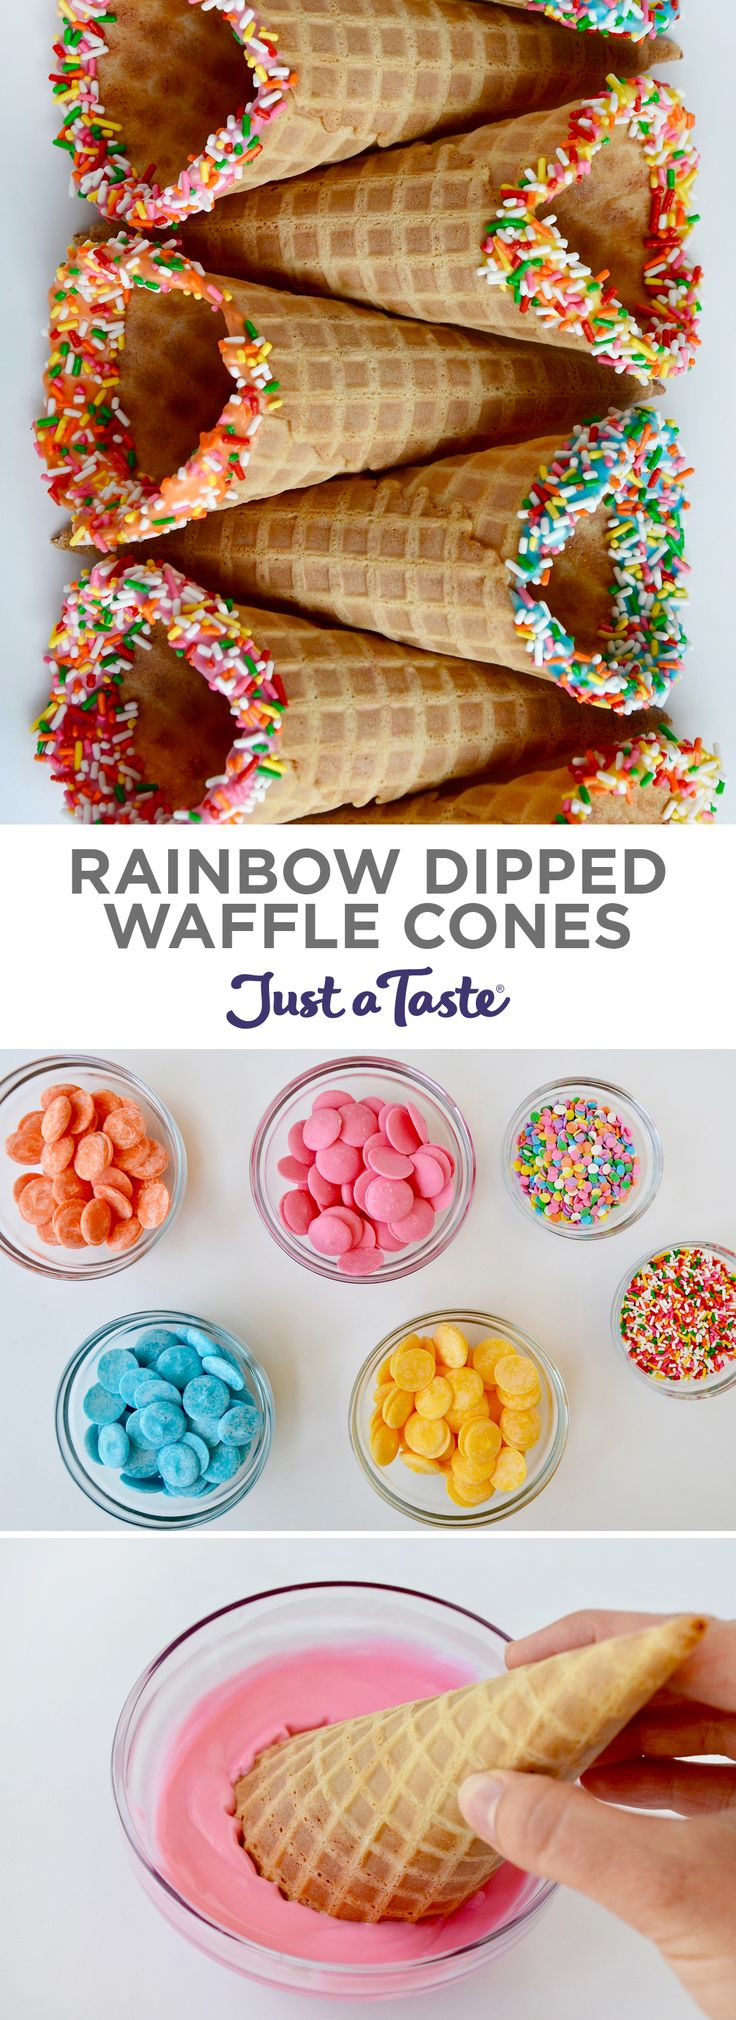 Rainbow Dipped Waffle Cones #recipe from justataste.com #summer